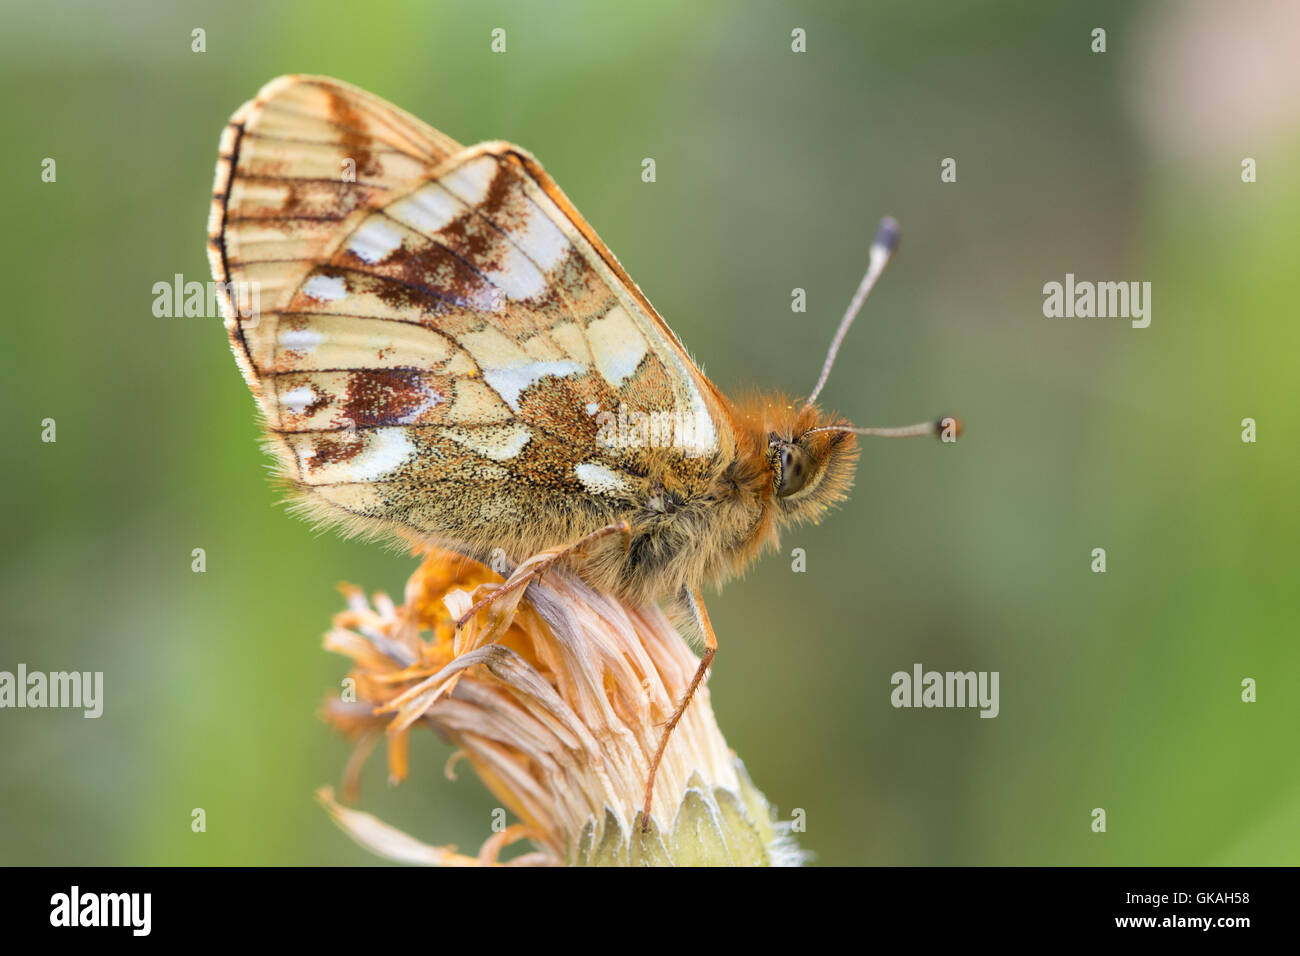 Shepherd's Fritillary (Boloria pales) butterfly showing its underwing - Stock Image